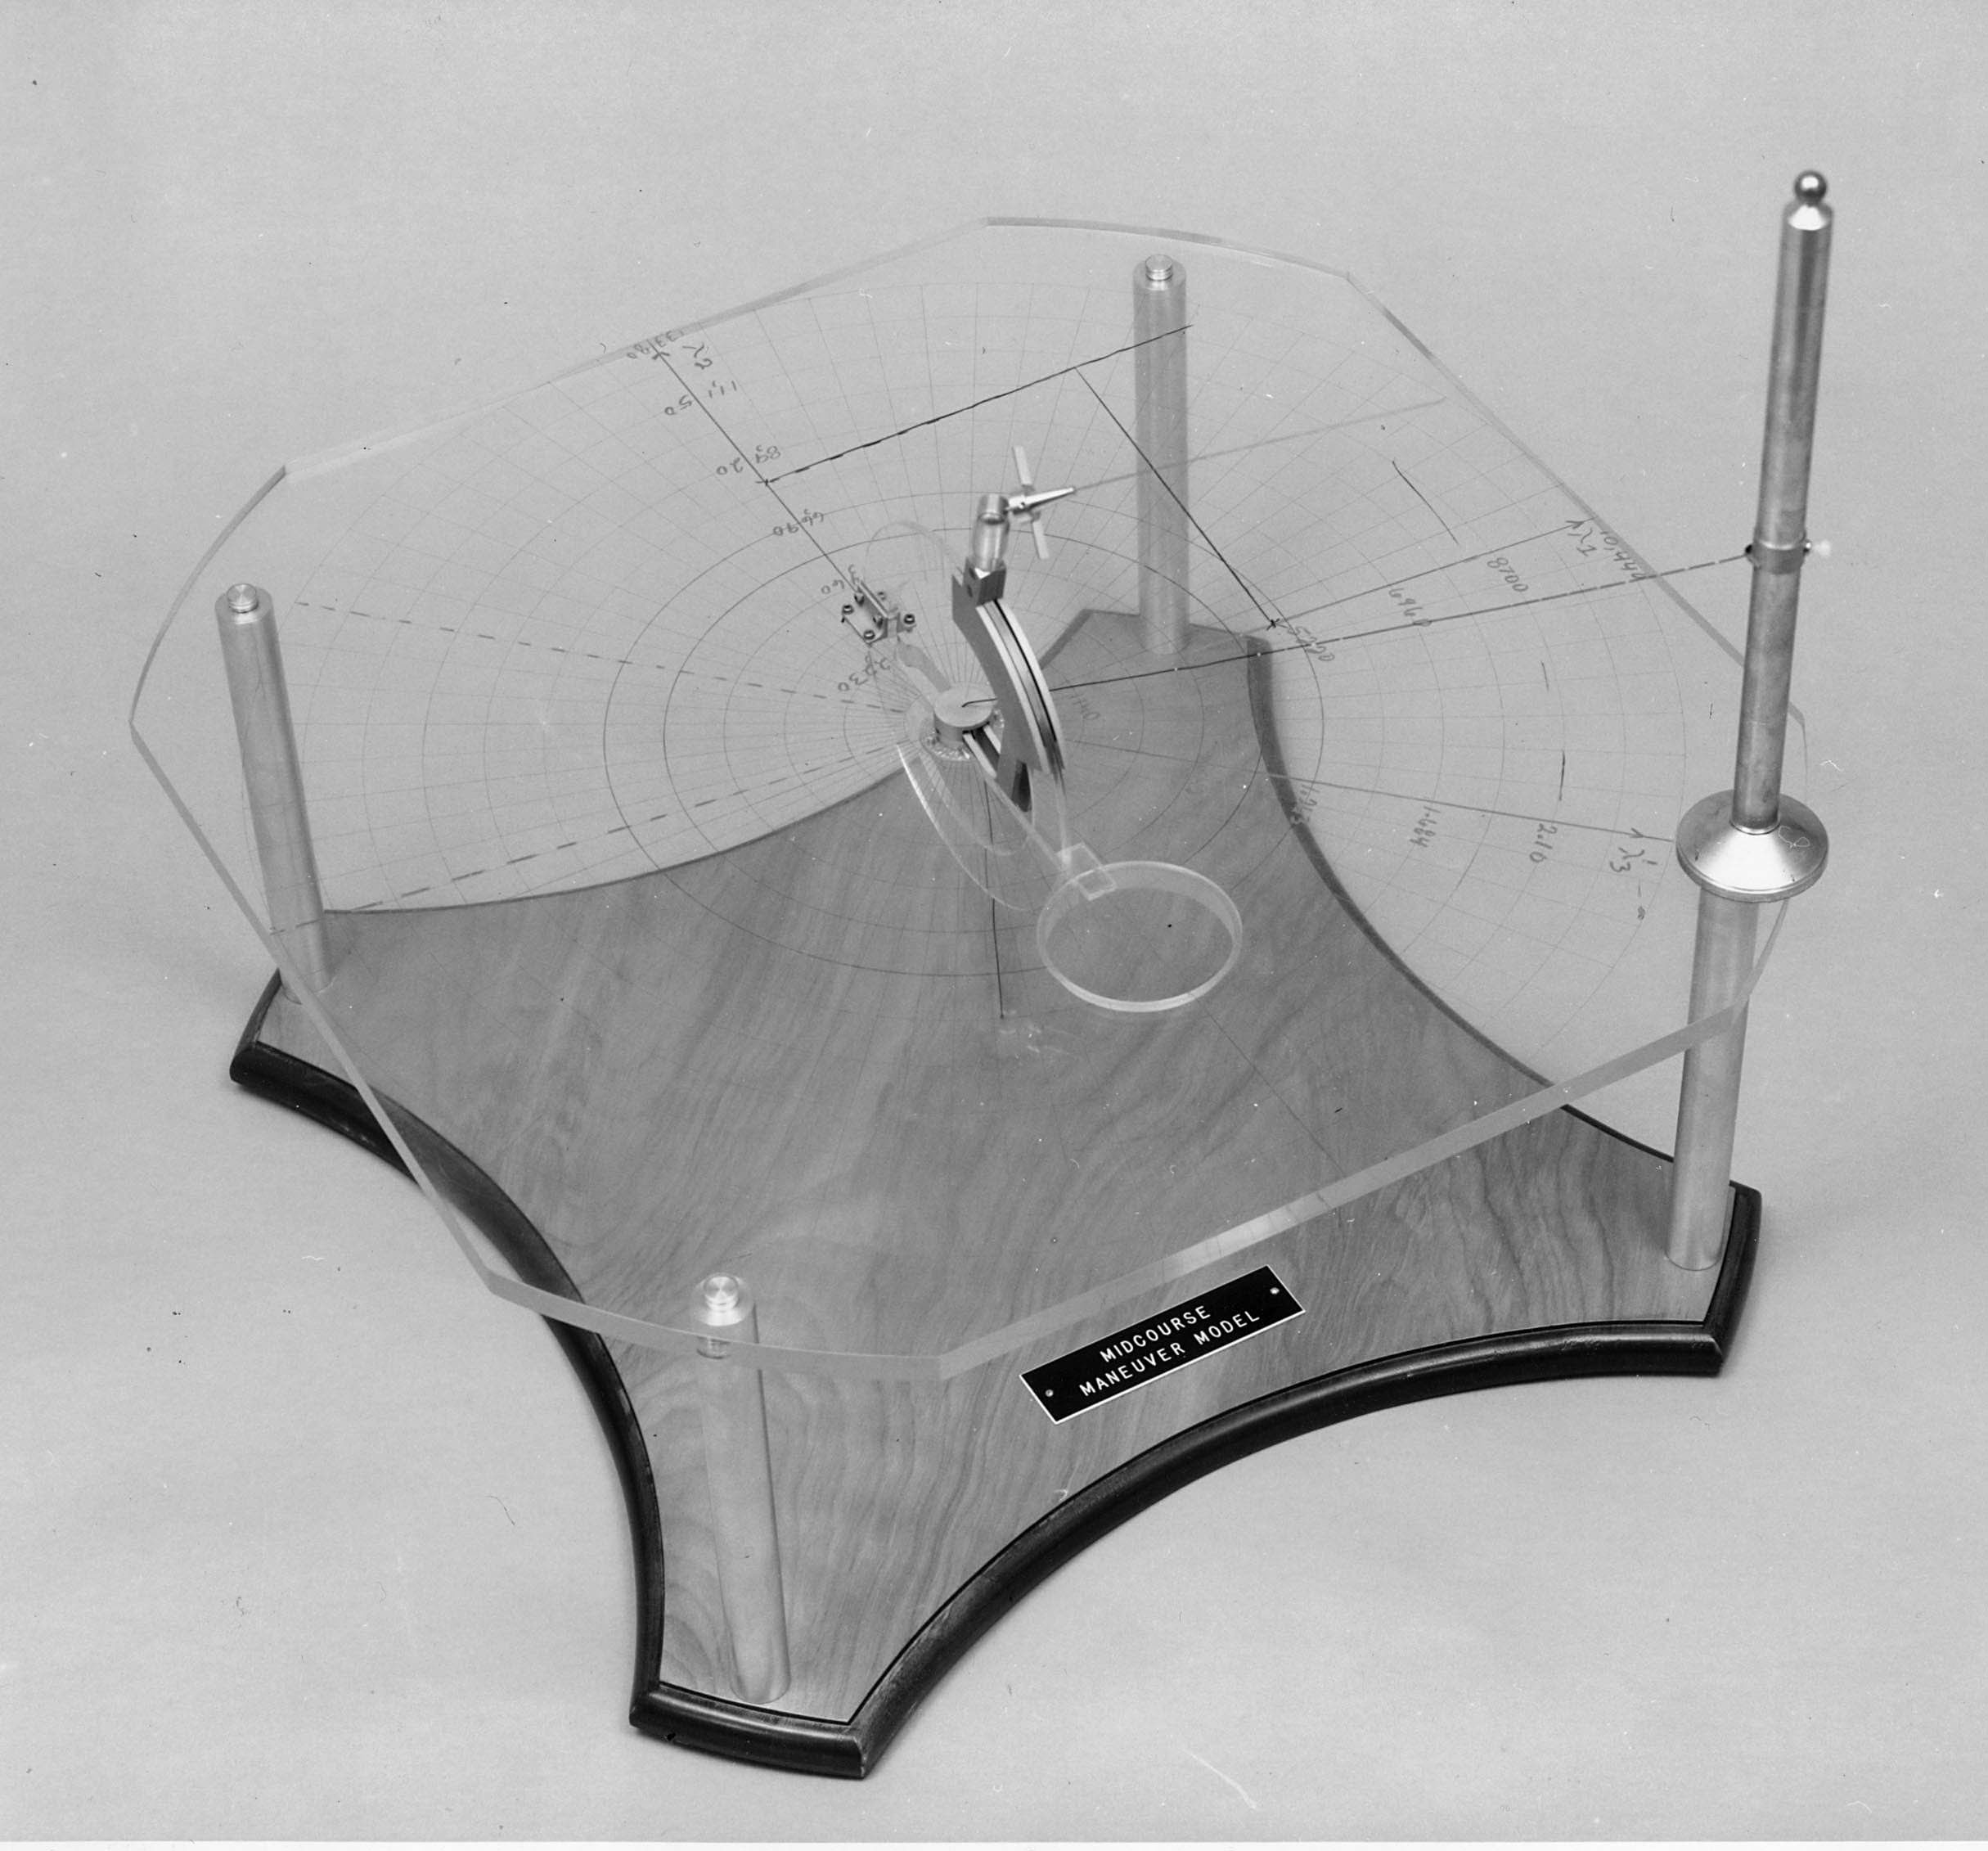 The Ranger Manoeuvre Model, designed by Kohlhase and Curkendall, used to check mid-course corrections on early unmanned flights to the Moon. Credit: Charles Kohlhase